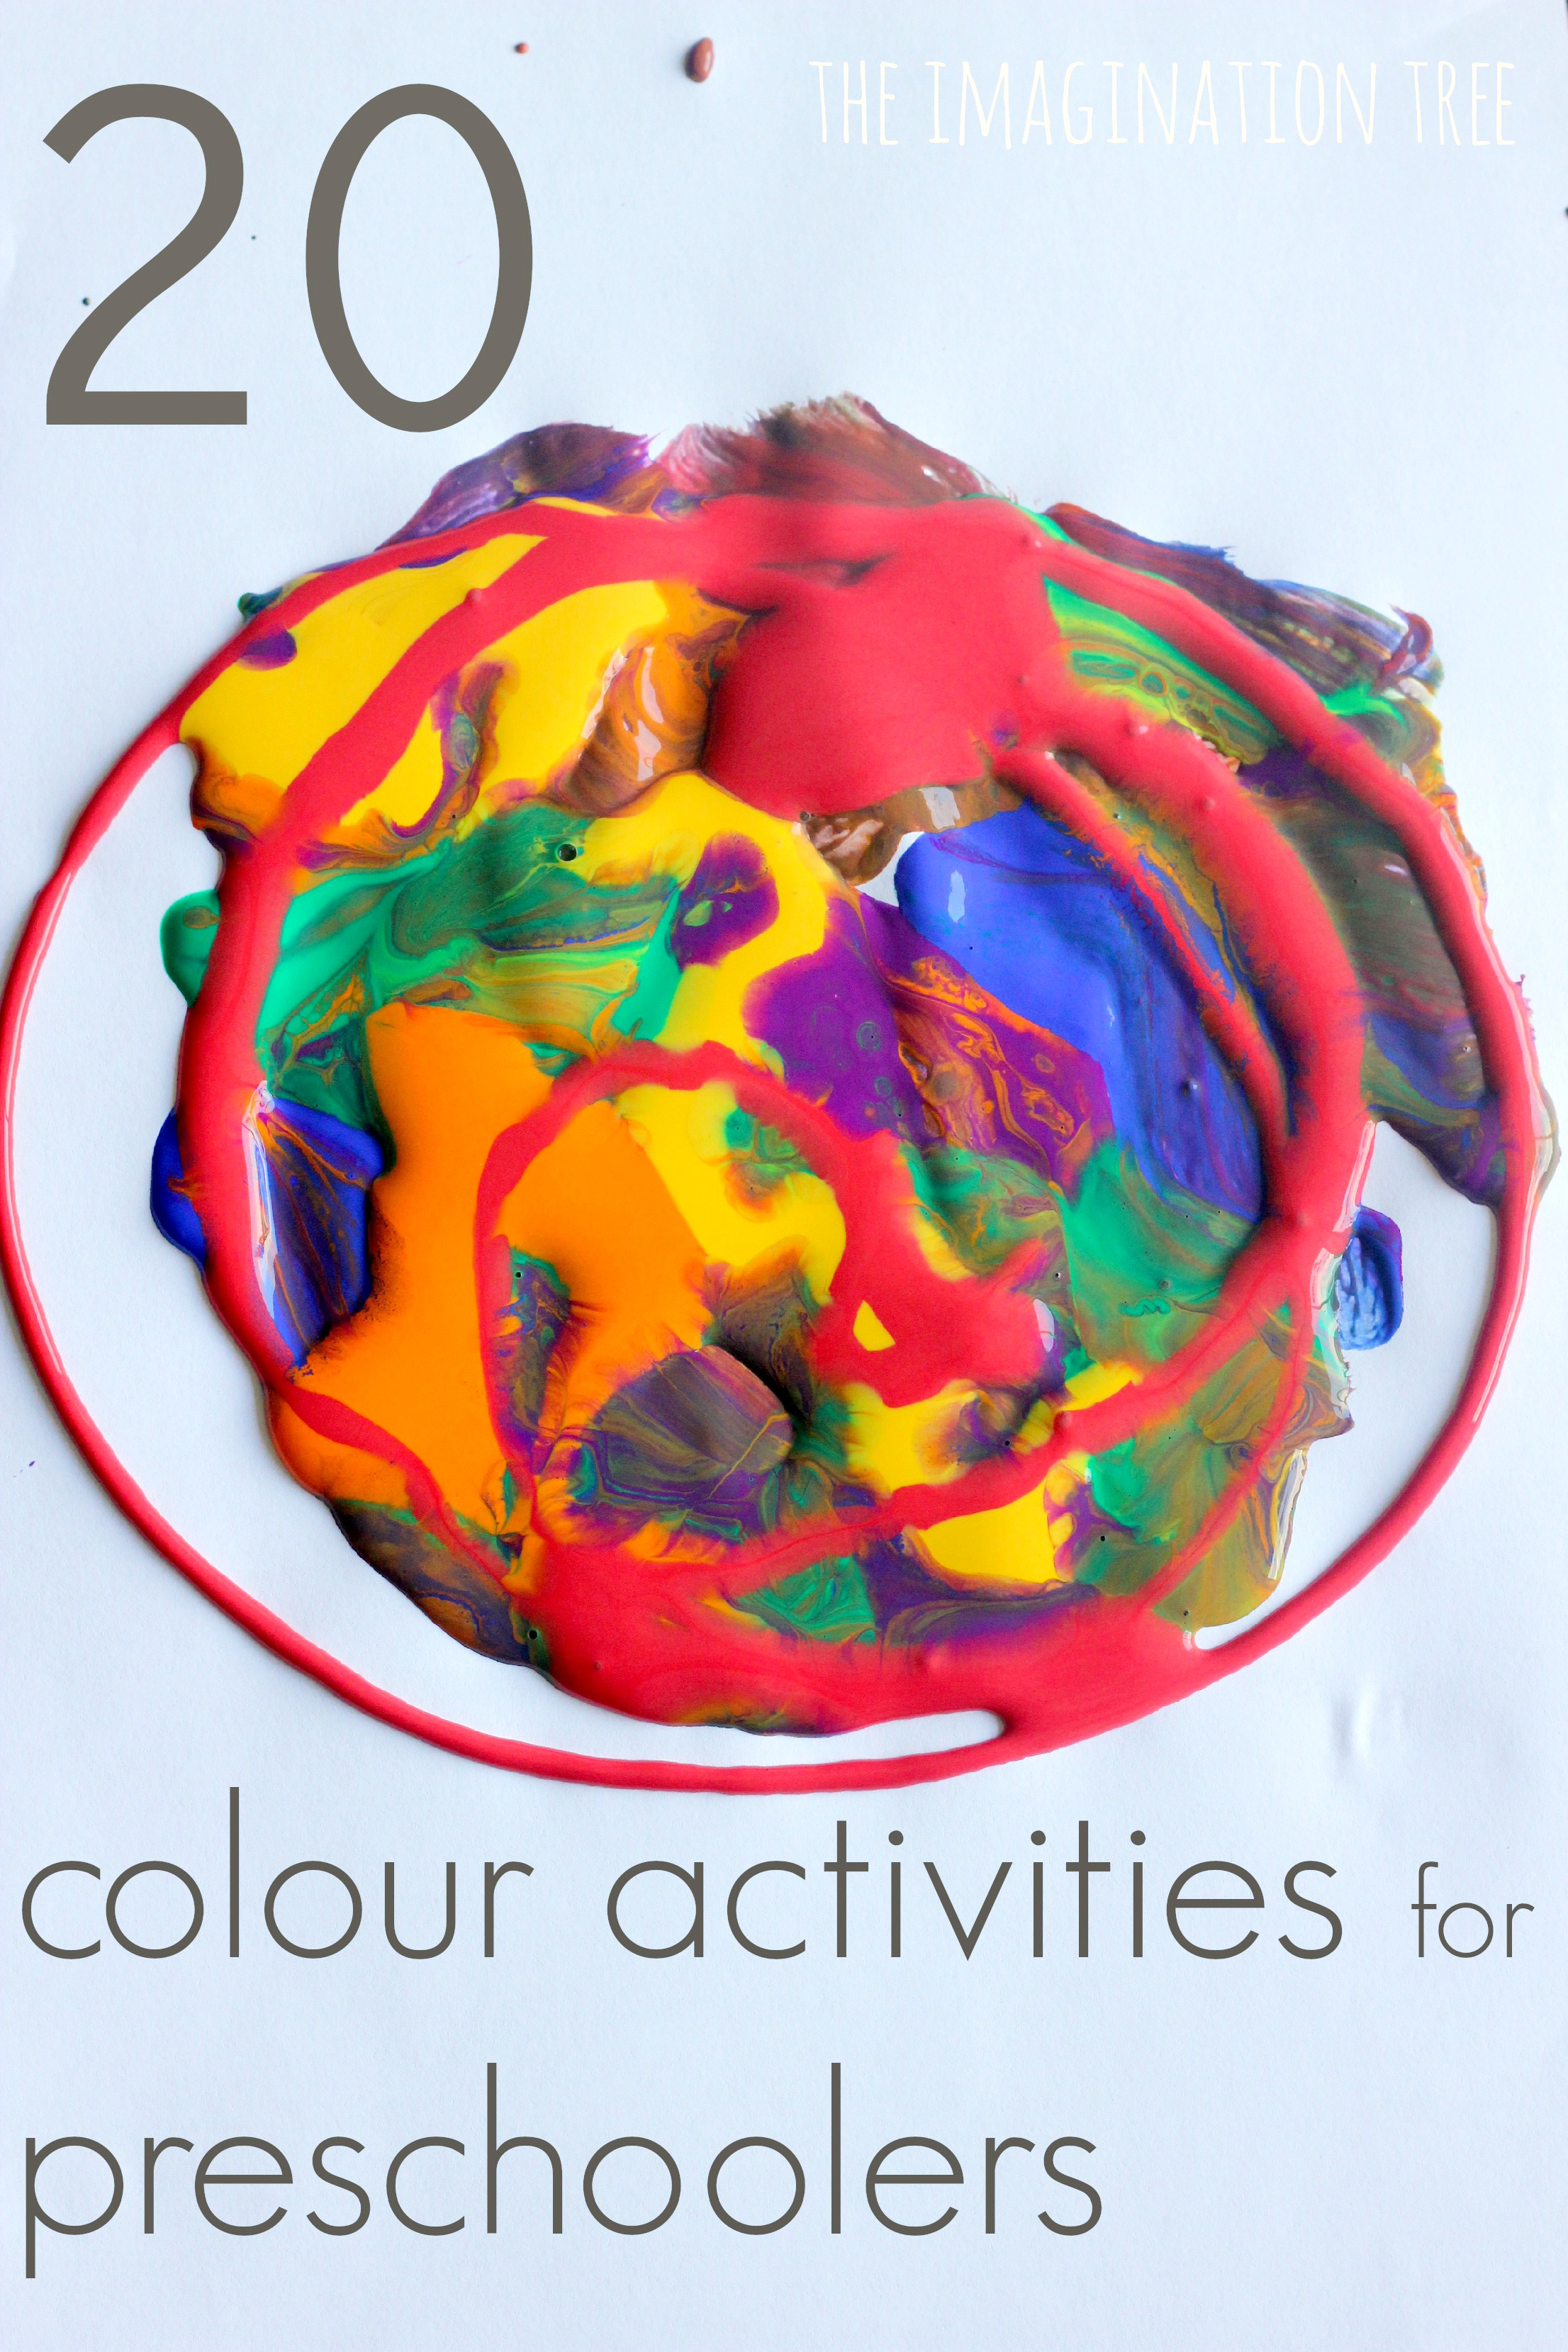 20 colour activities for preschoolers